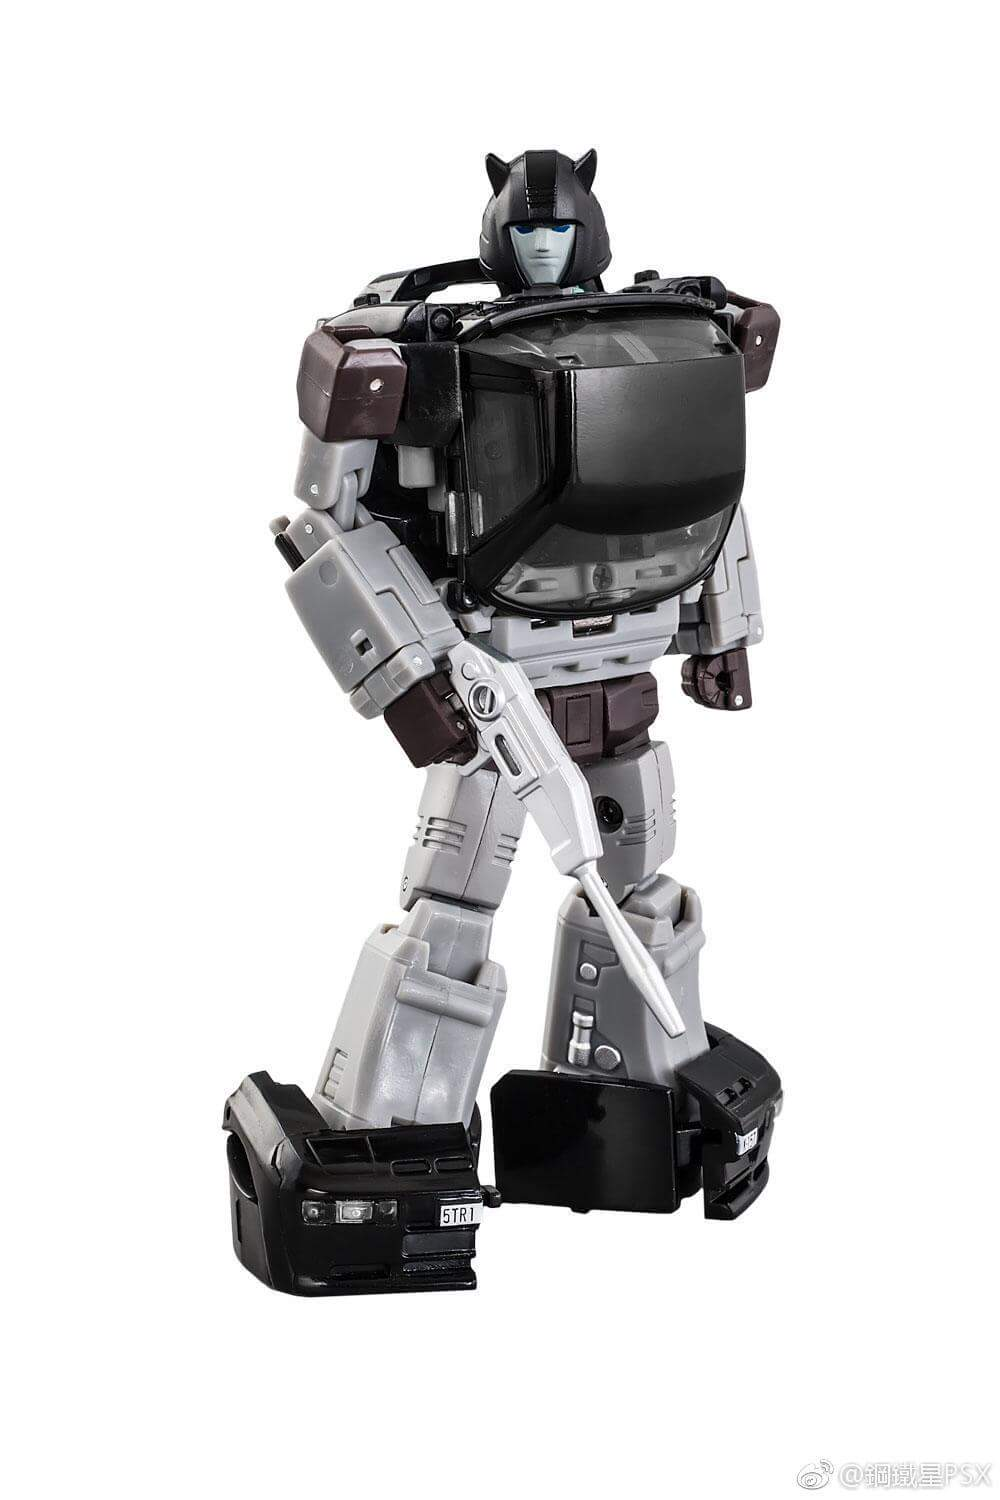 [Ocular Max] Produit Tiers - Minibots MP - PS-09 Hellion (aka Cliffjumper/Matamore), PS-11 Omne - (aka Cosmos) - Page 2 S8FkHOtE_o